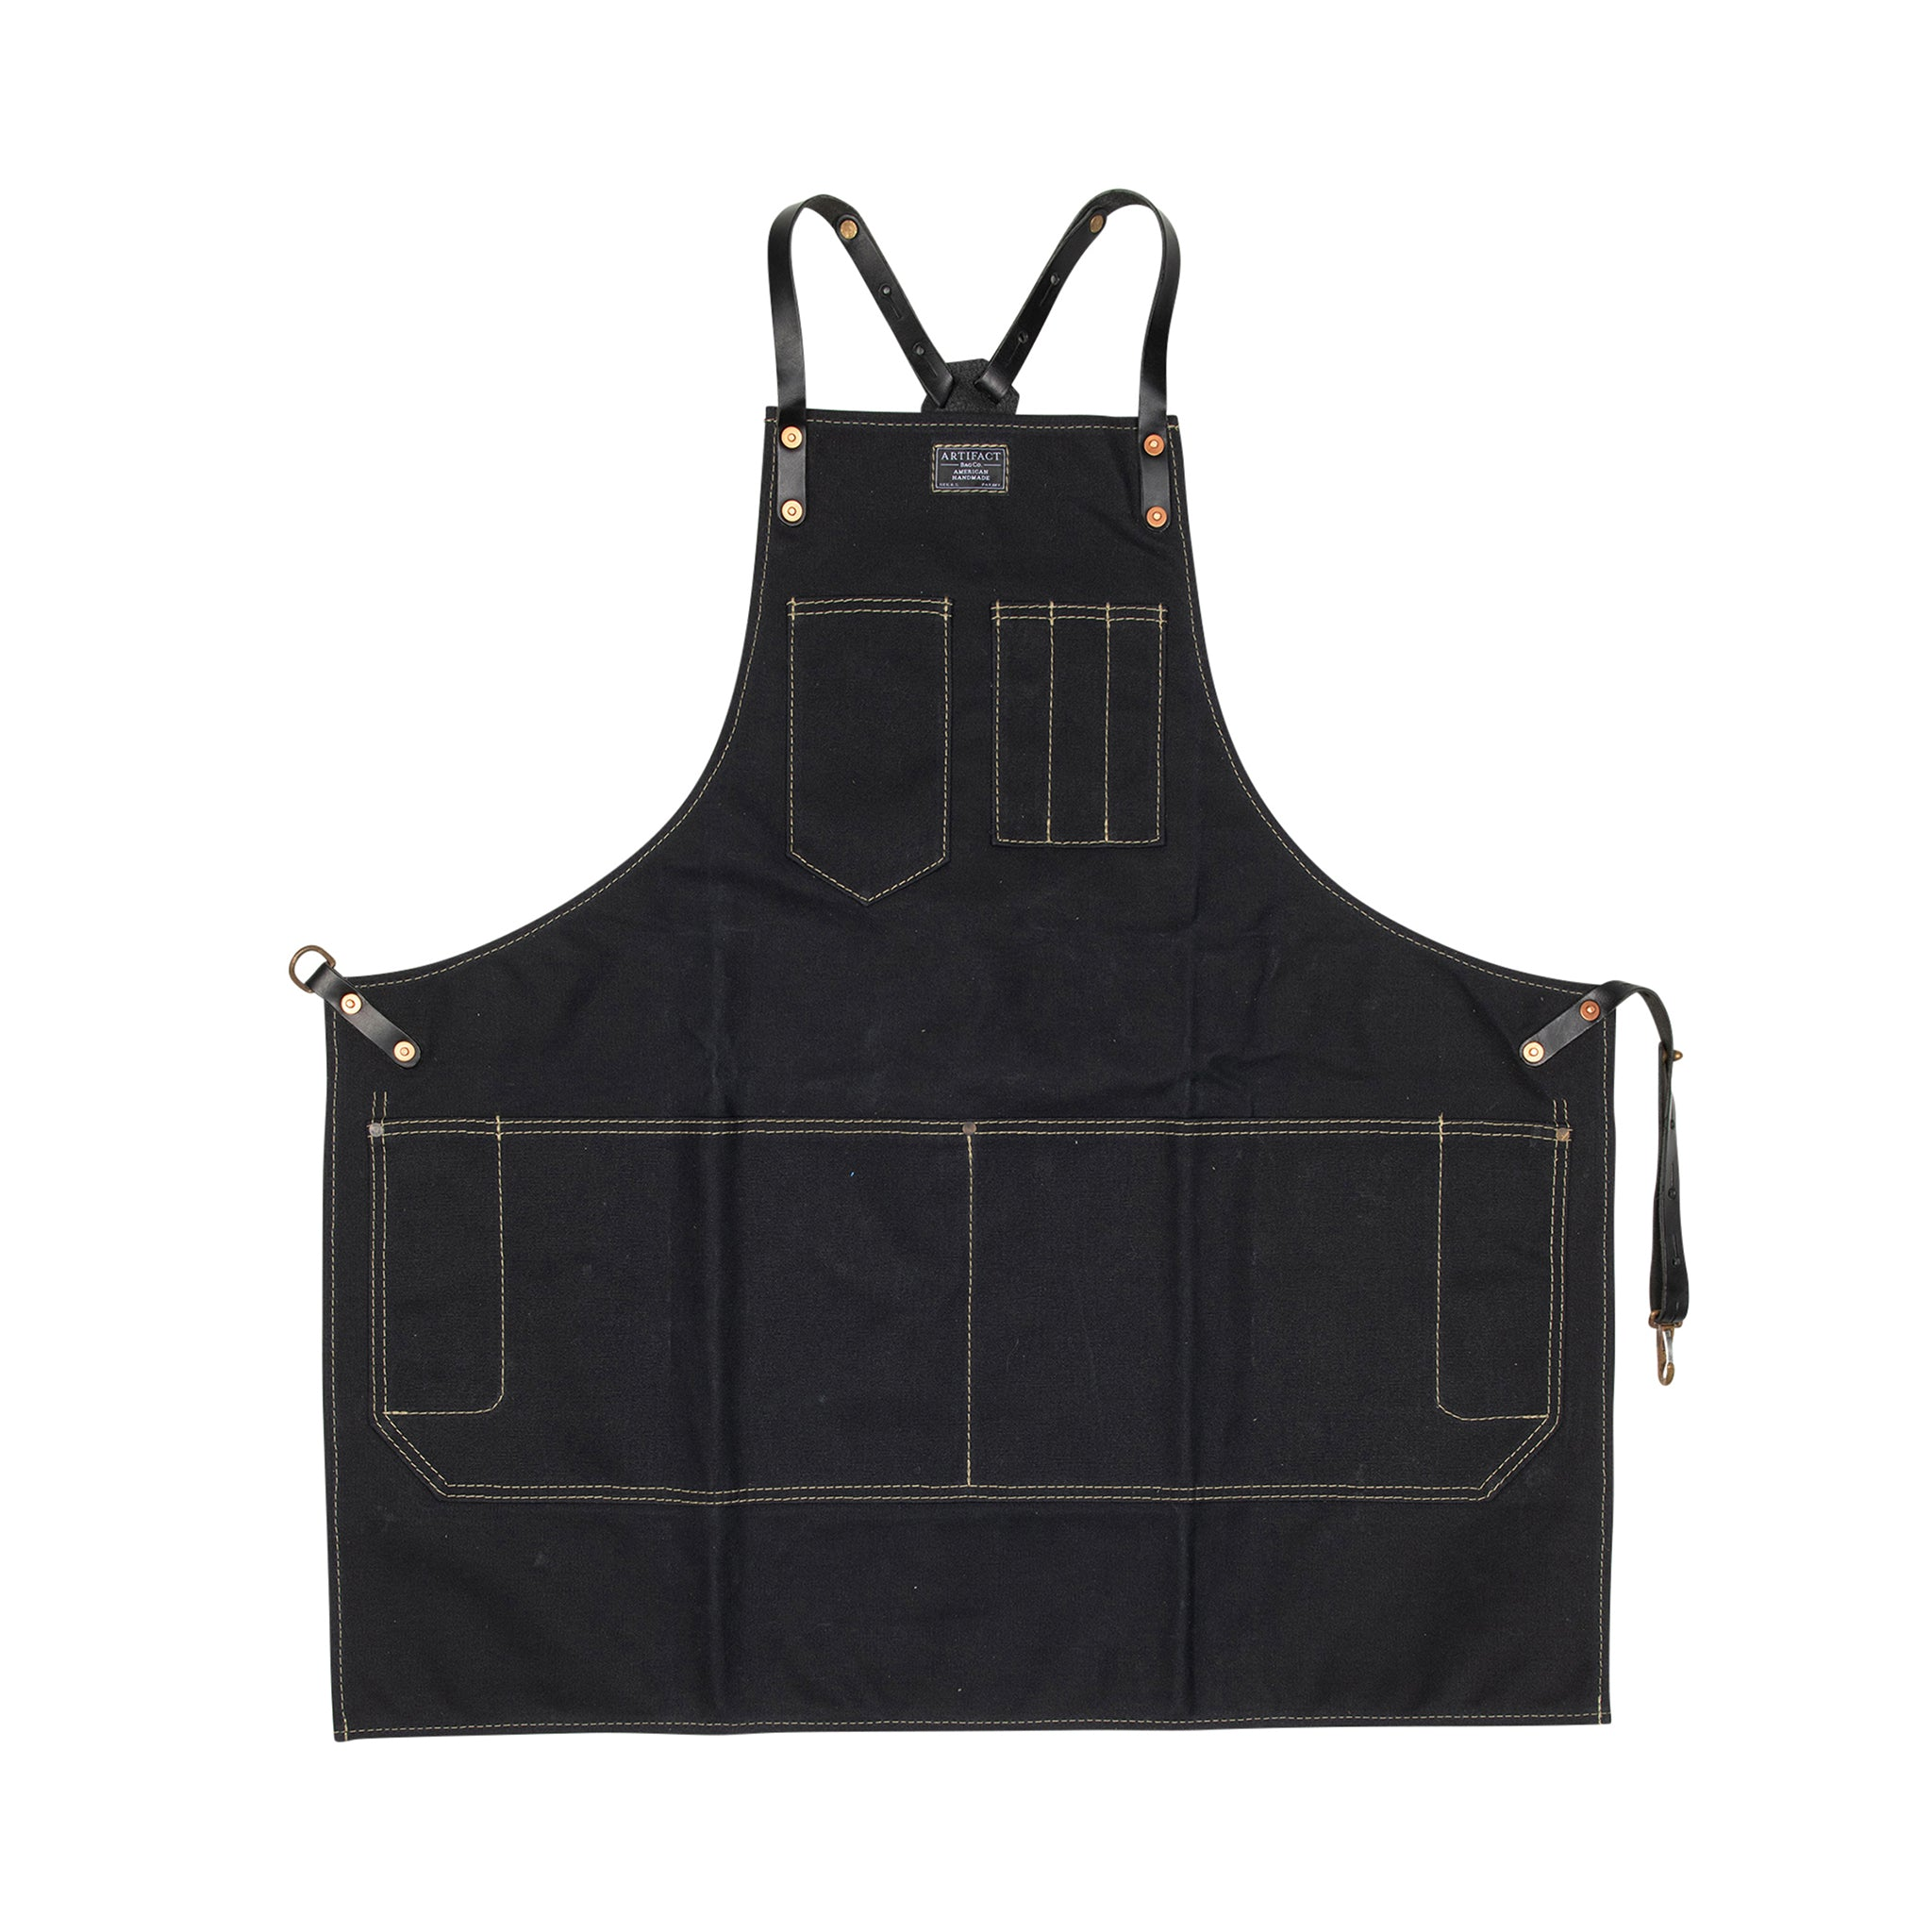 Wax Canvas Artisan w/ Leather Y-Strap - Artifact Aprons 8